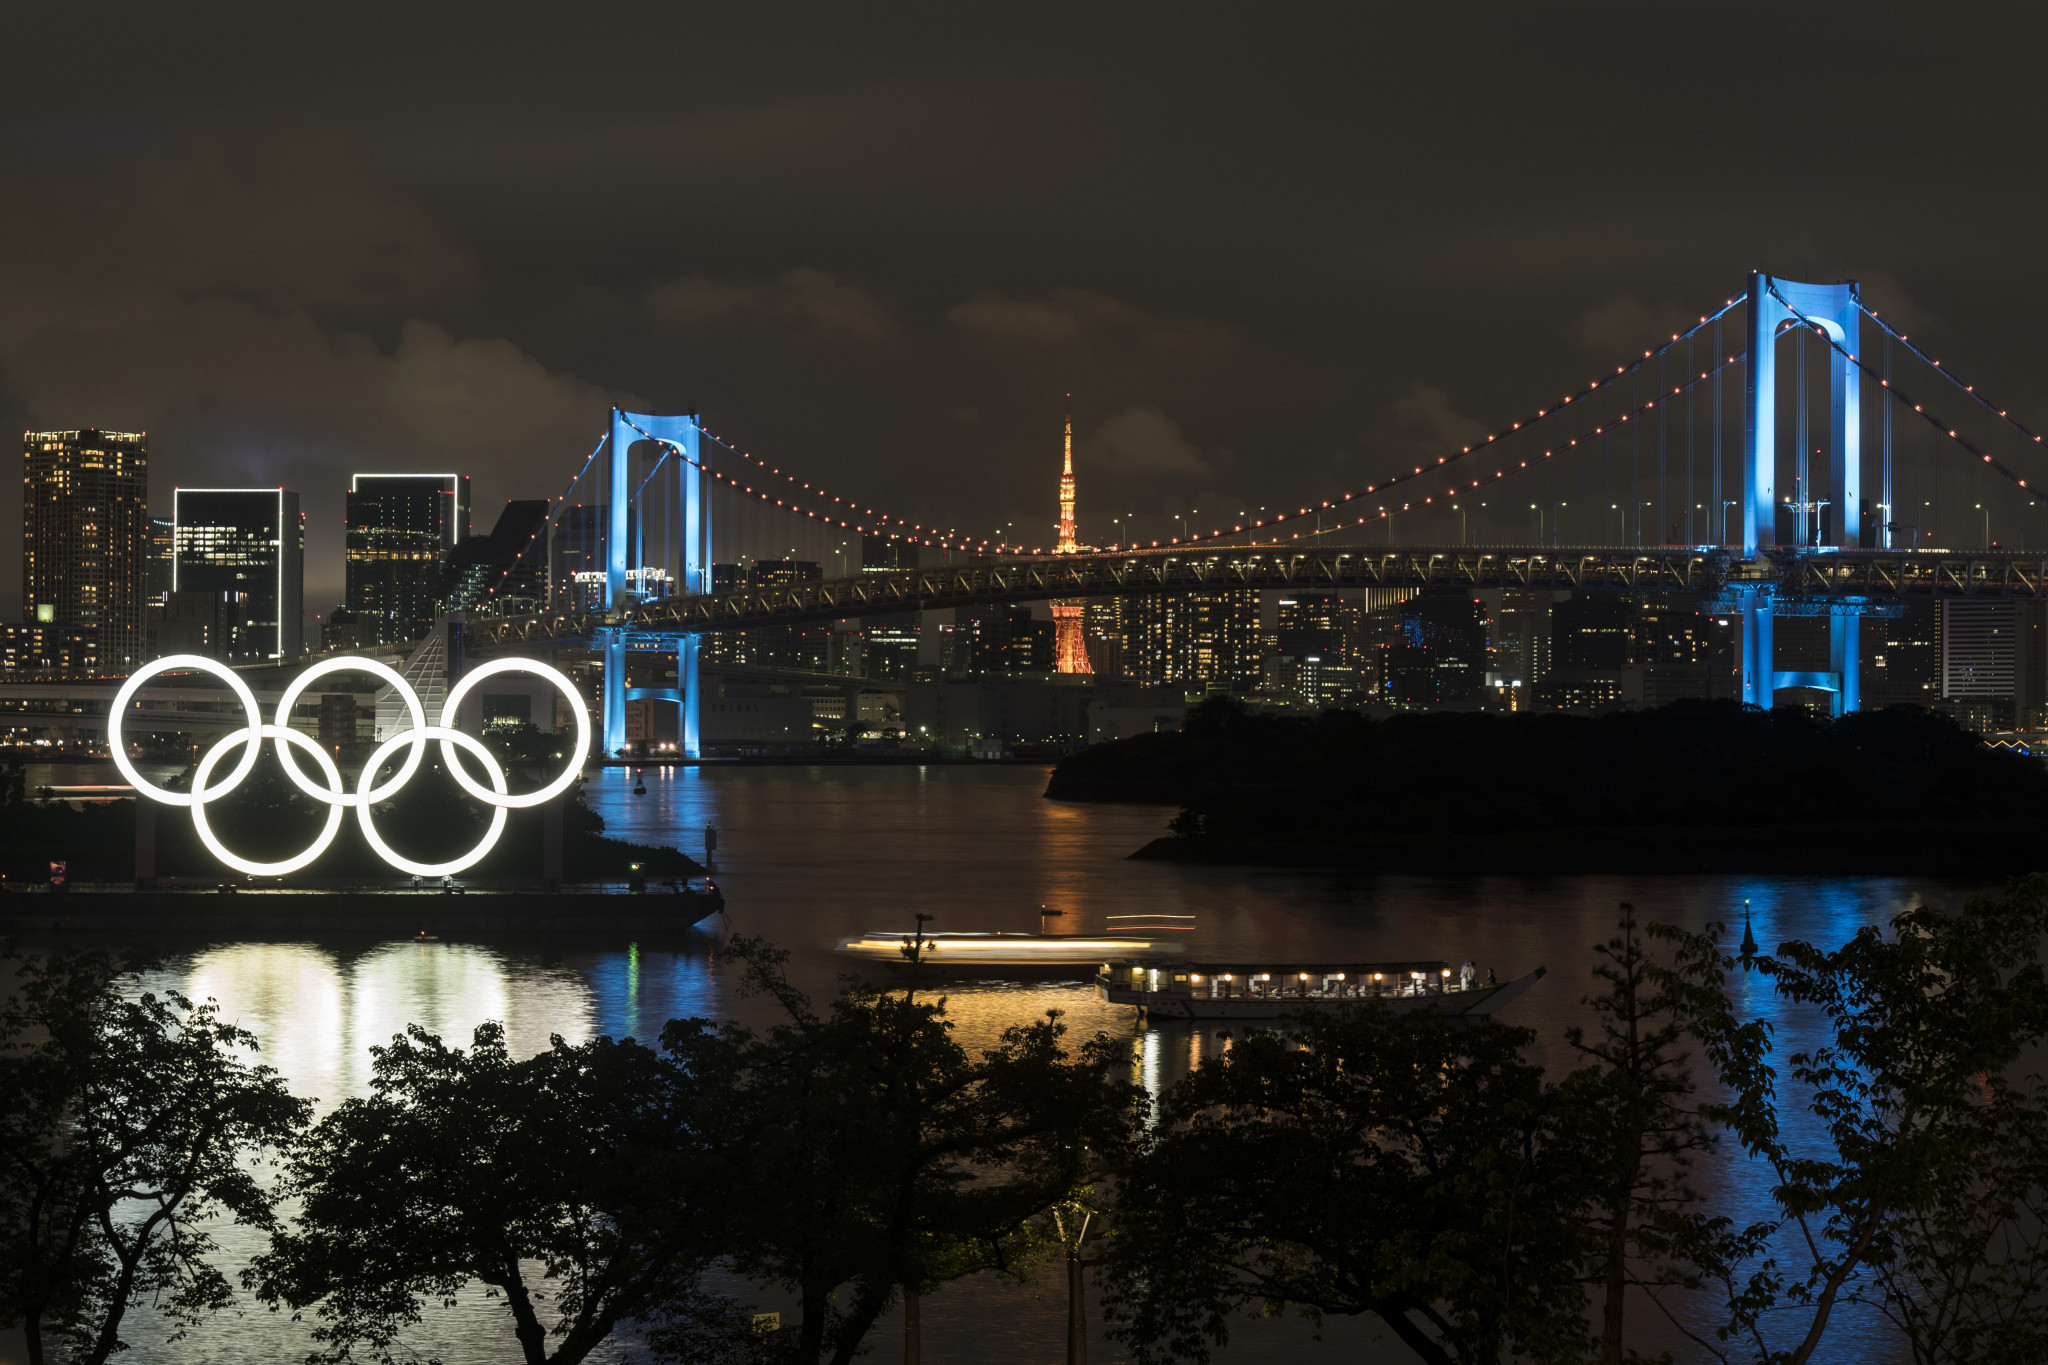 Tokyo 2020 has been postponed until 2021 because of the coronavirus pandemic ©Getty Images